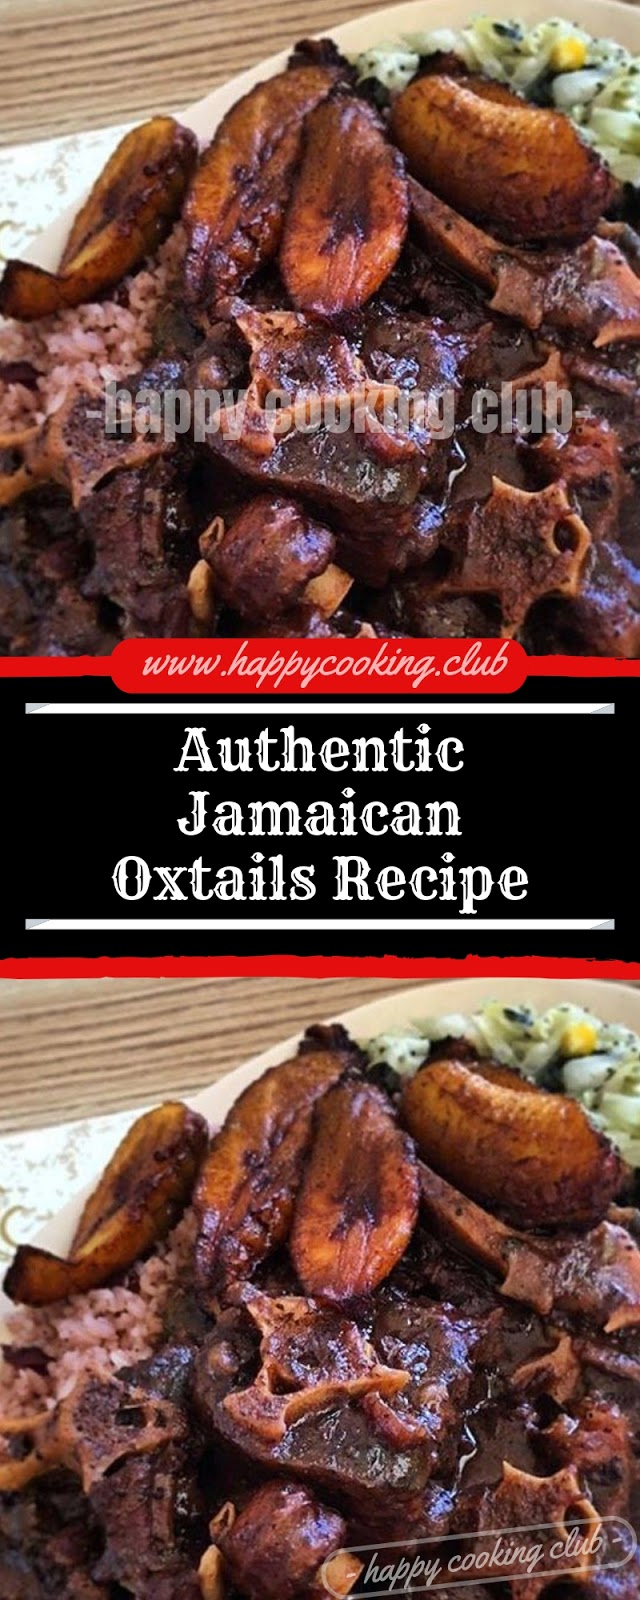 Authentic Jamaican Oxtails Recipe